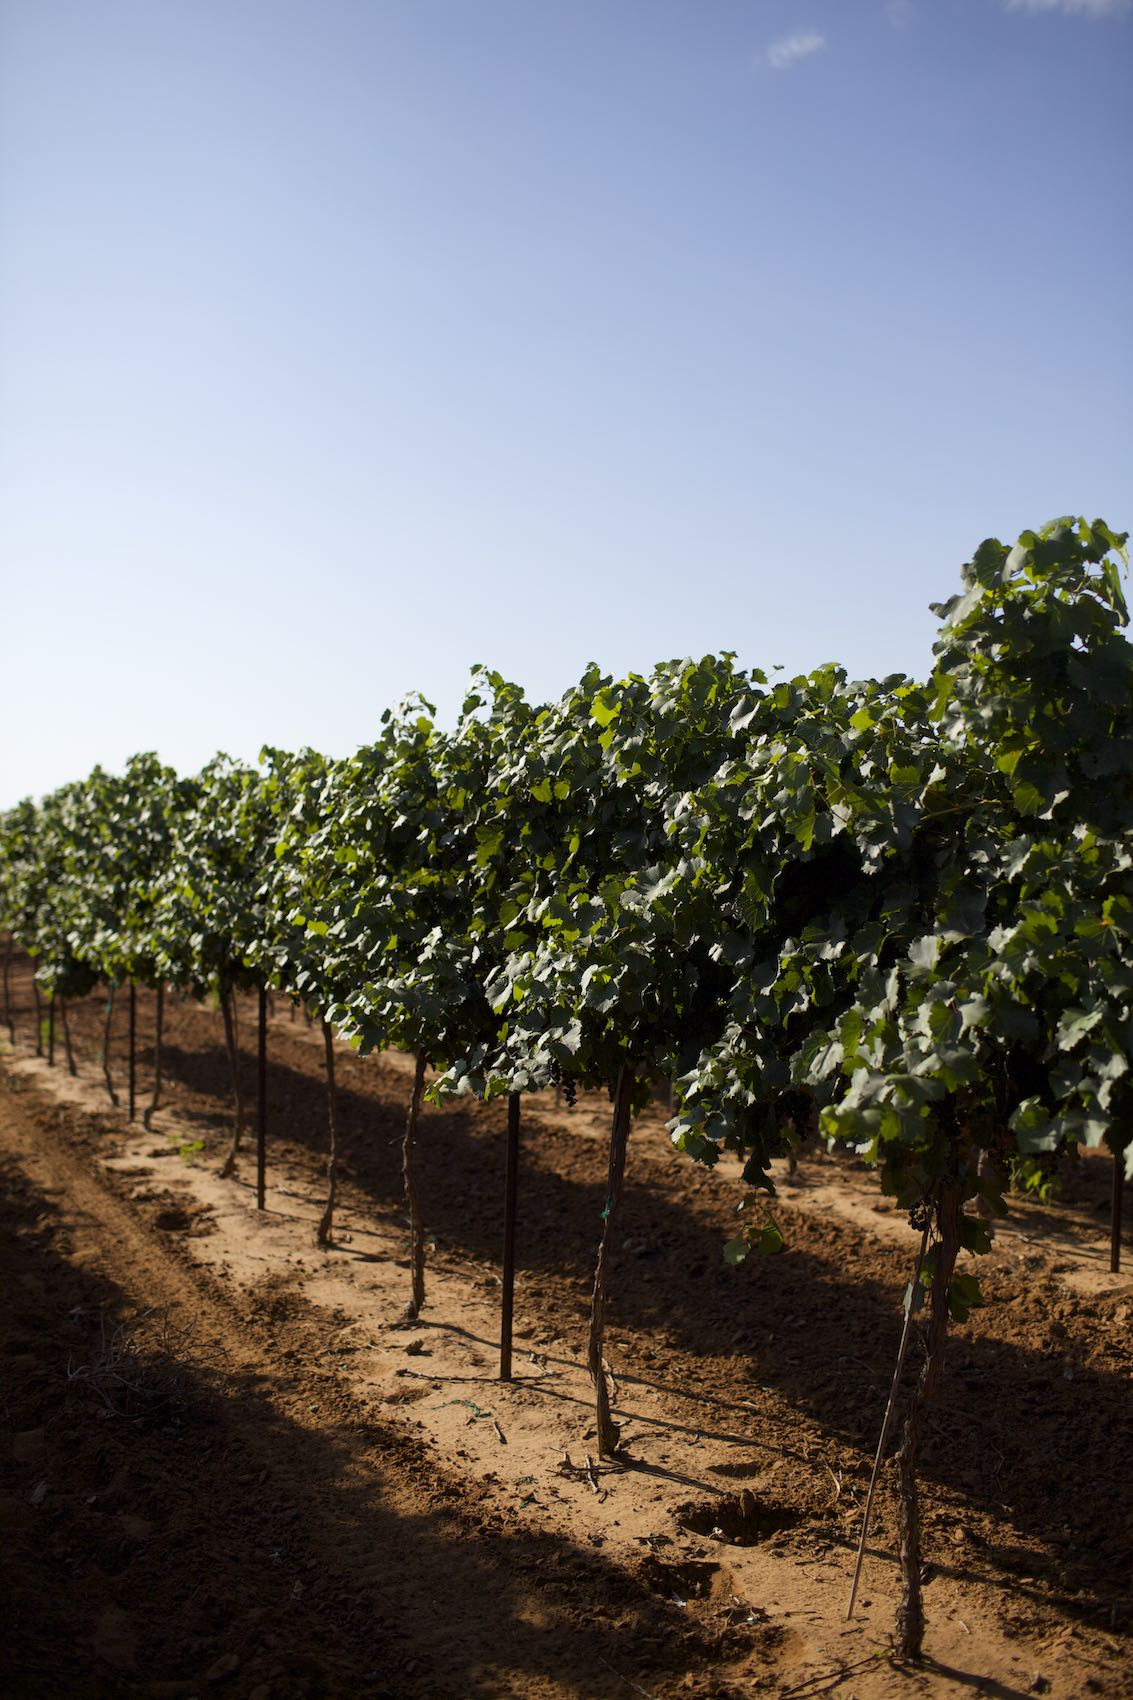 Jody Horton Photography - Rows of grape vines at Bigham Family Farms, Muleshoe, TX.